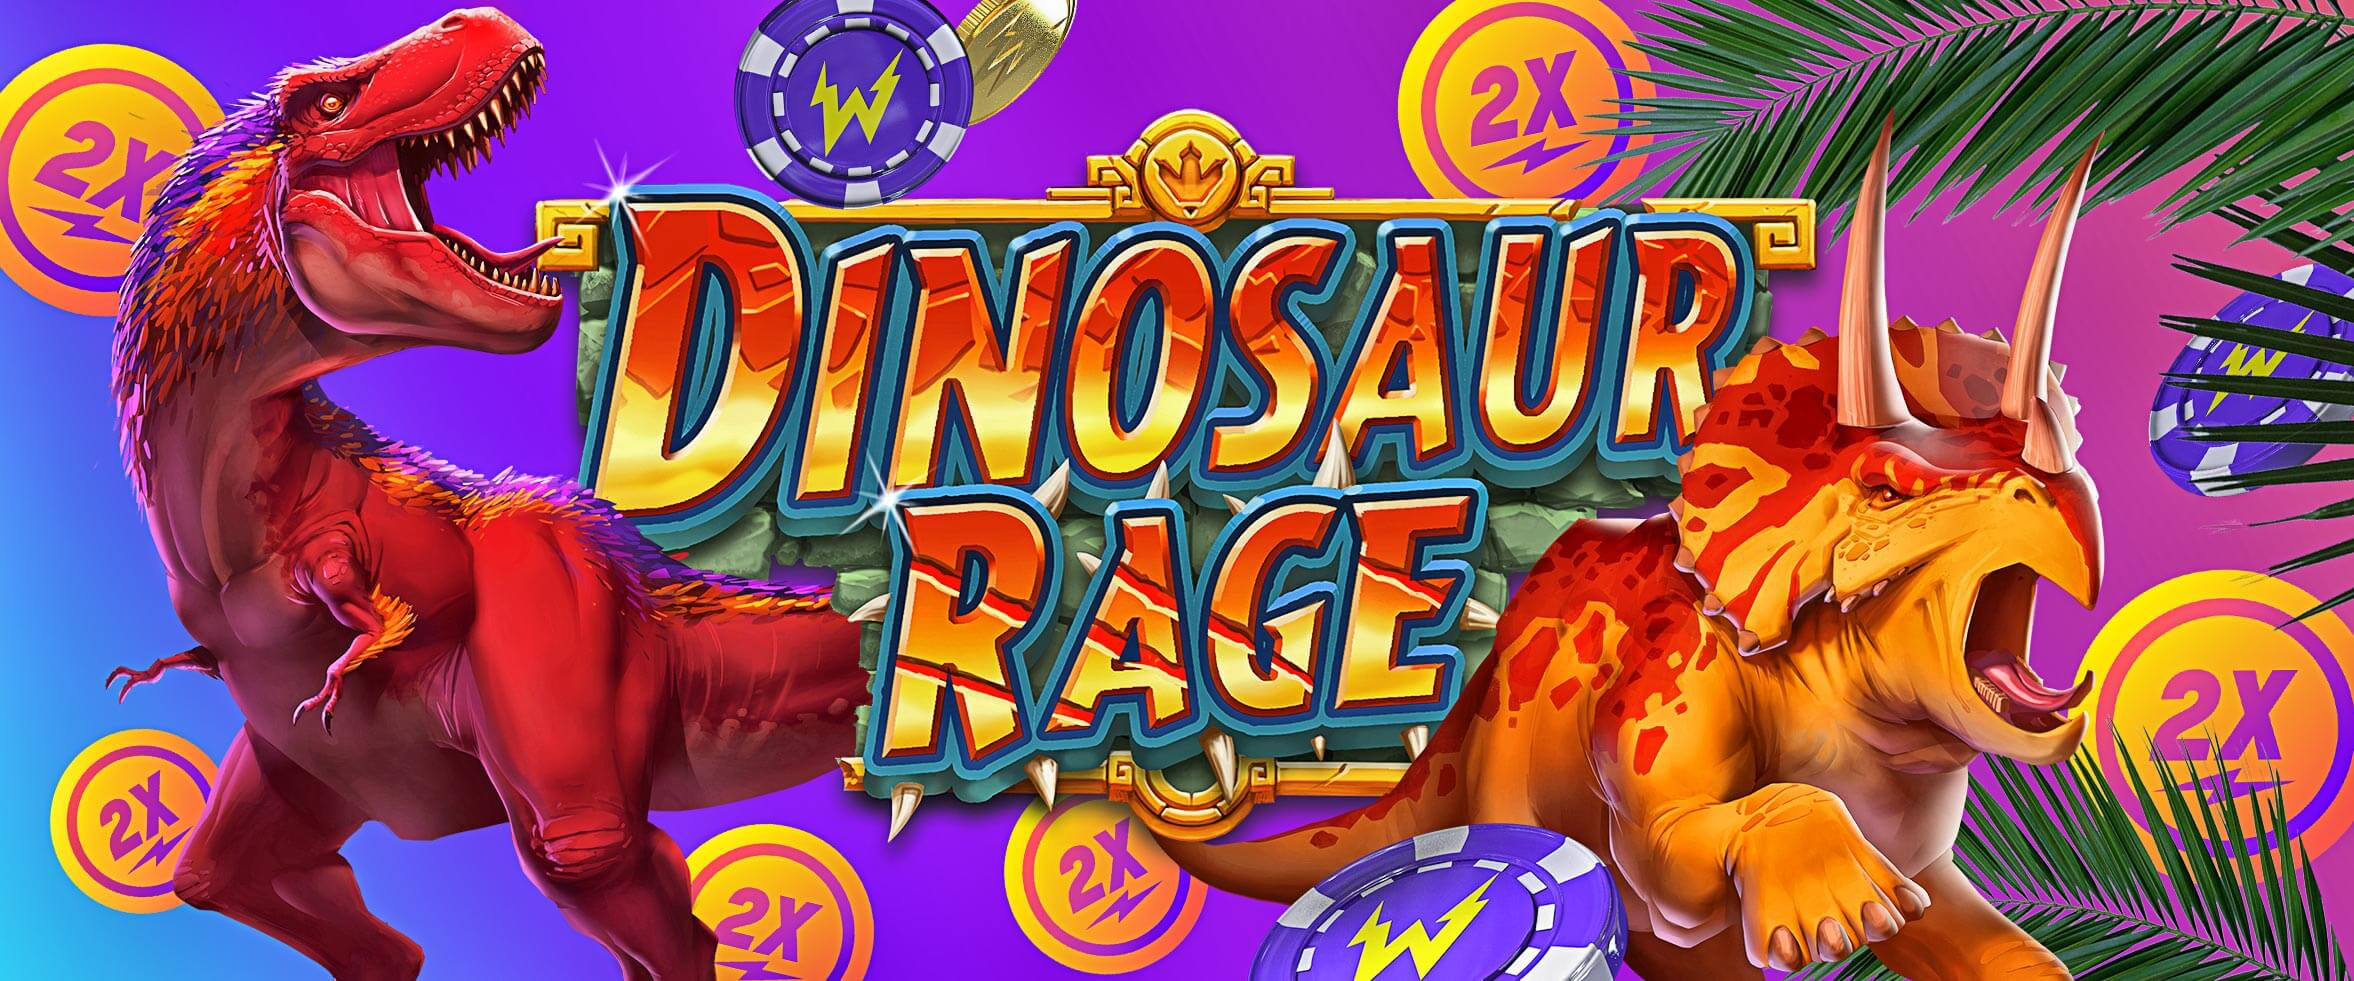 Free Spins and Double Speed on the new Game, Dinosaur Rage